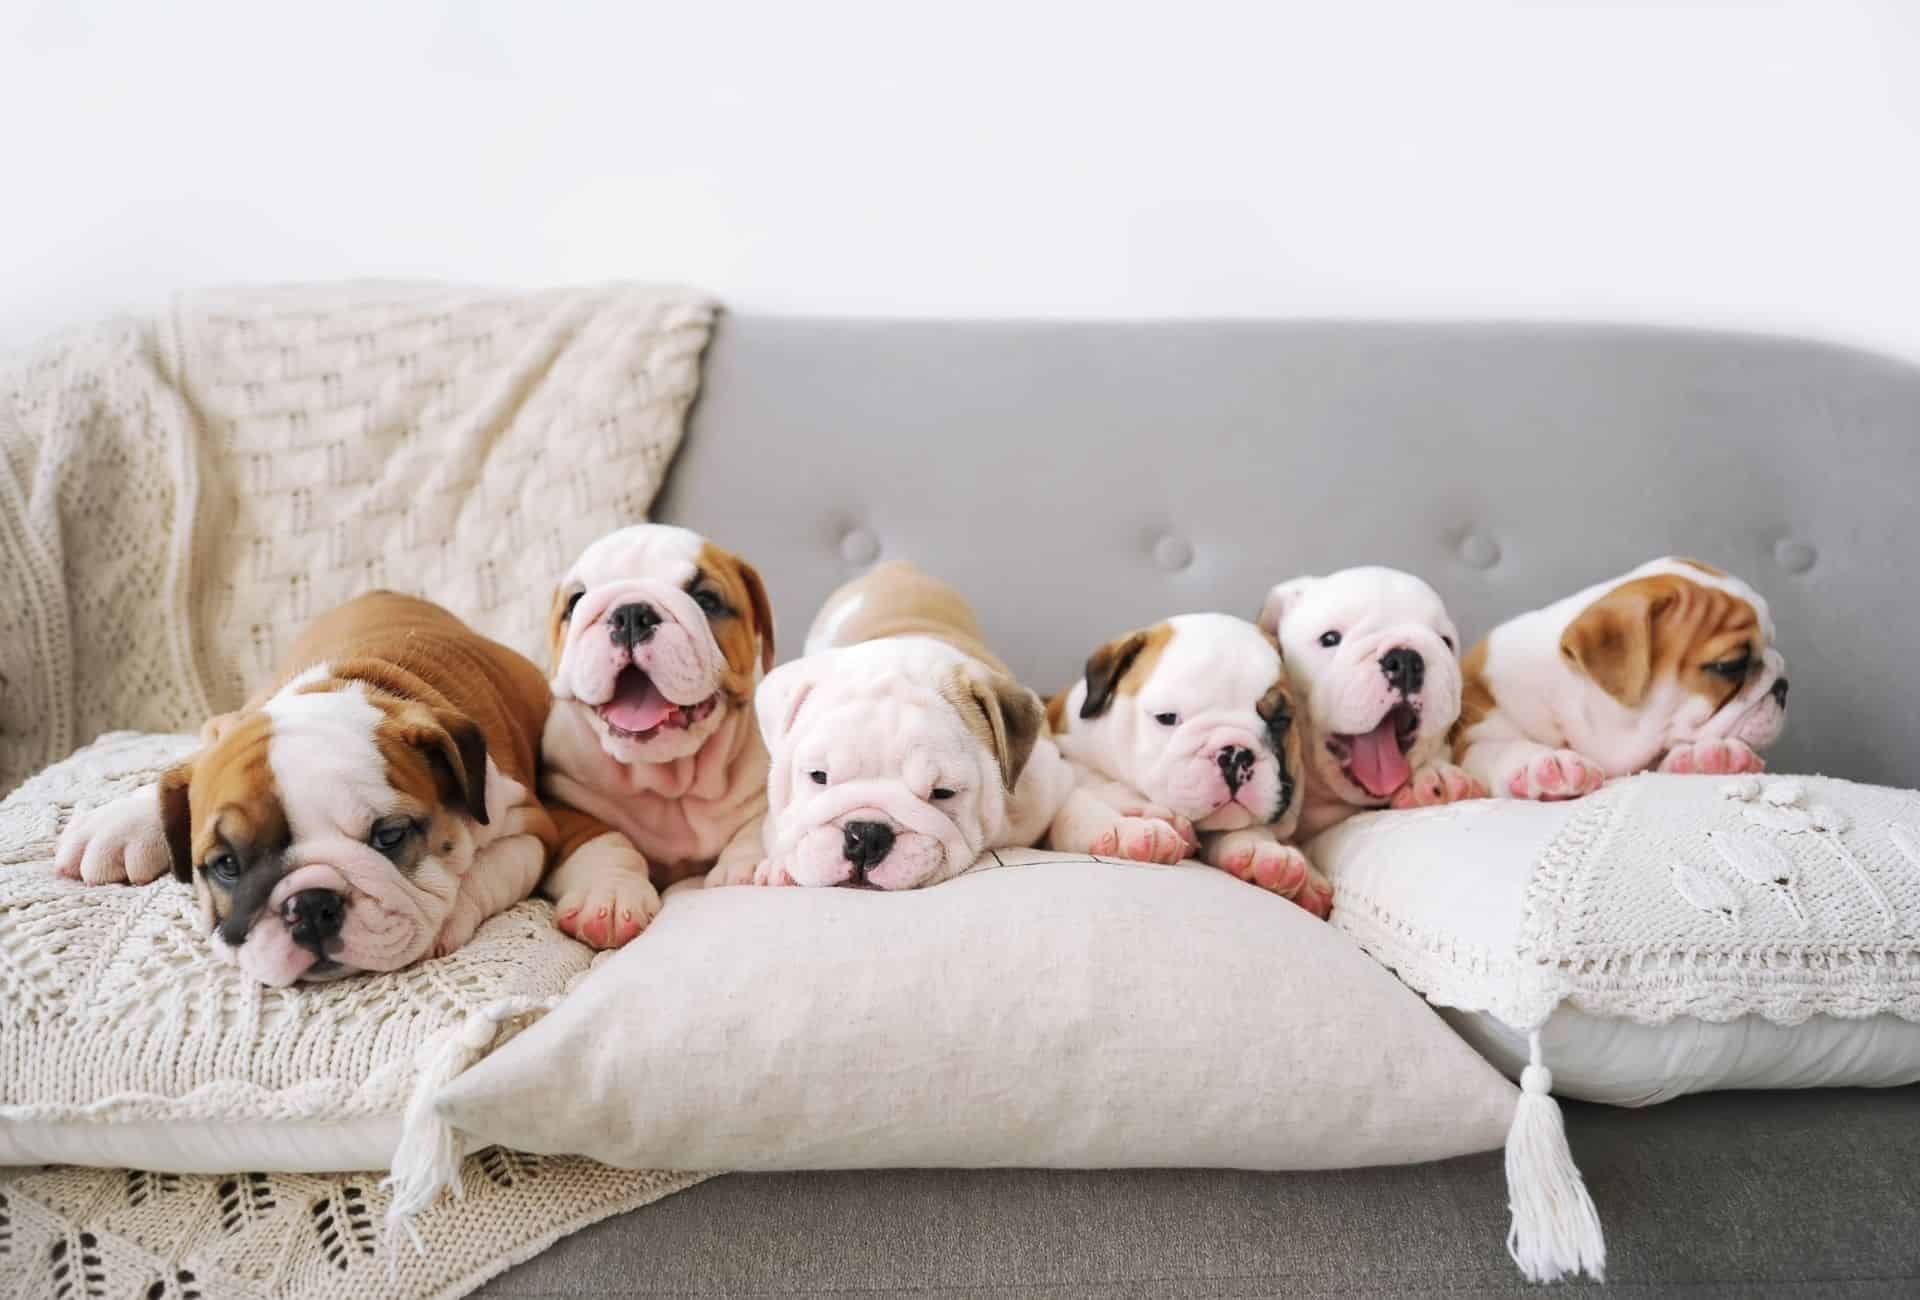 Six white and brown Bulldog puppies together on the couch.